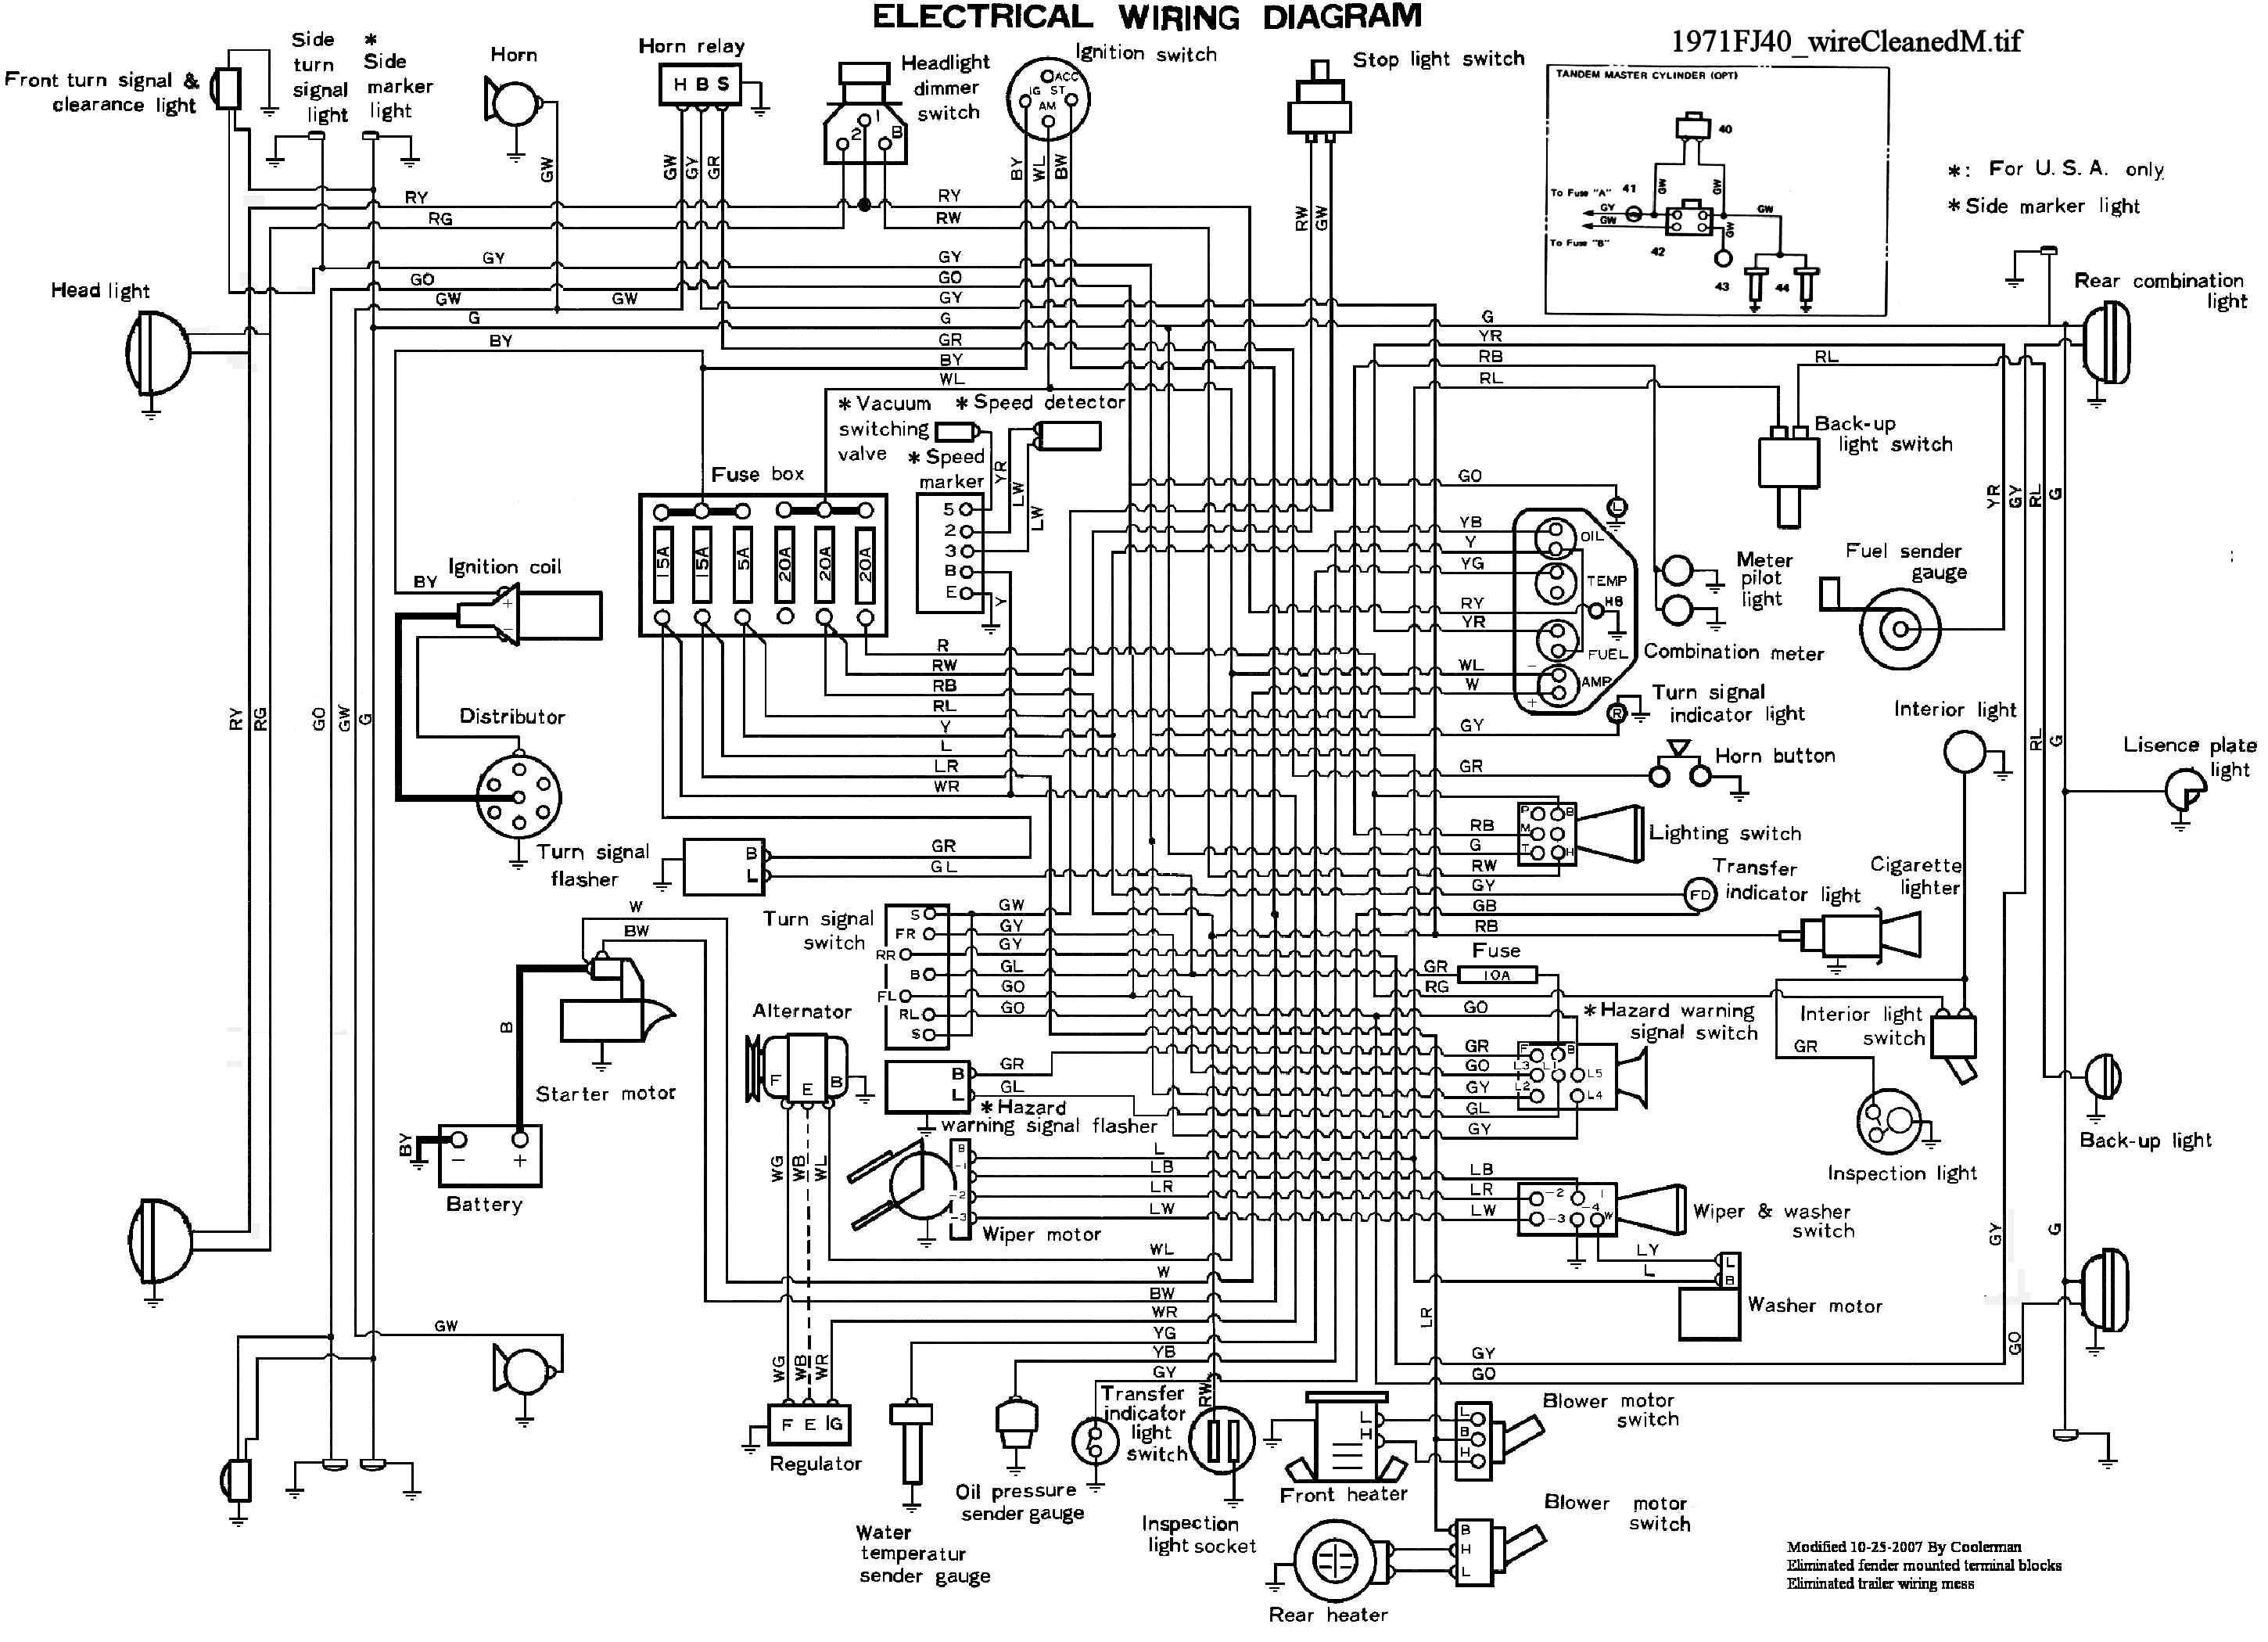 71fj40_wireCleanedM untitled document 72 fj40 wiring diagram at creativeand.co